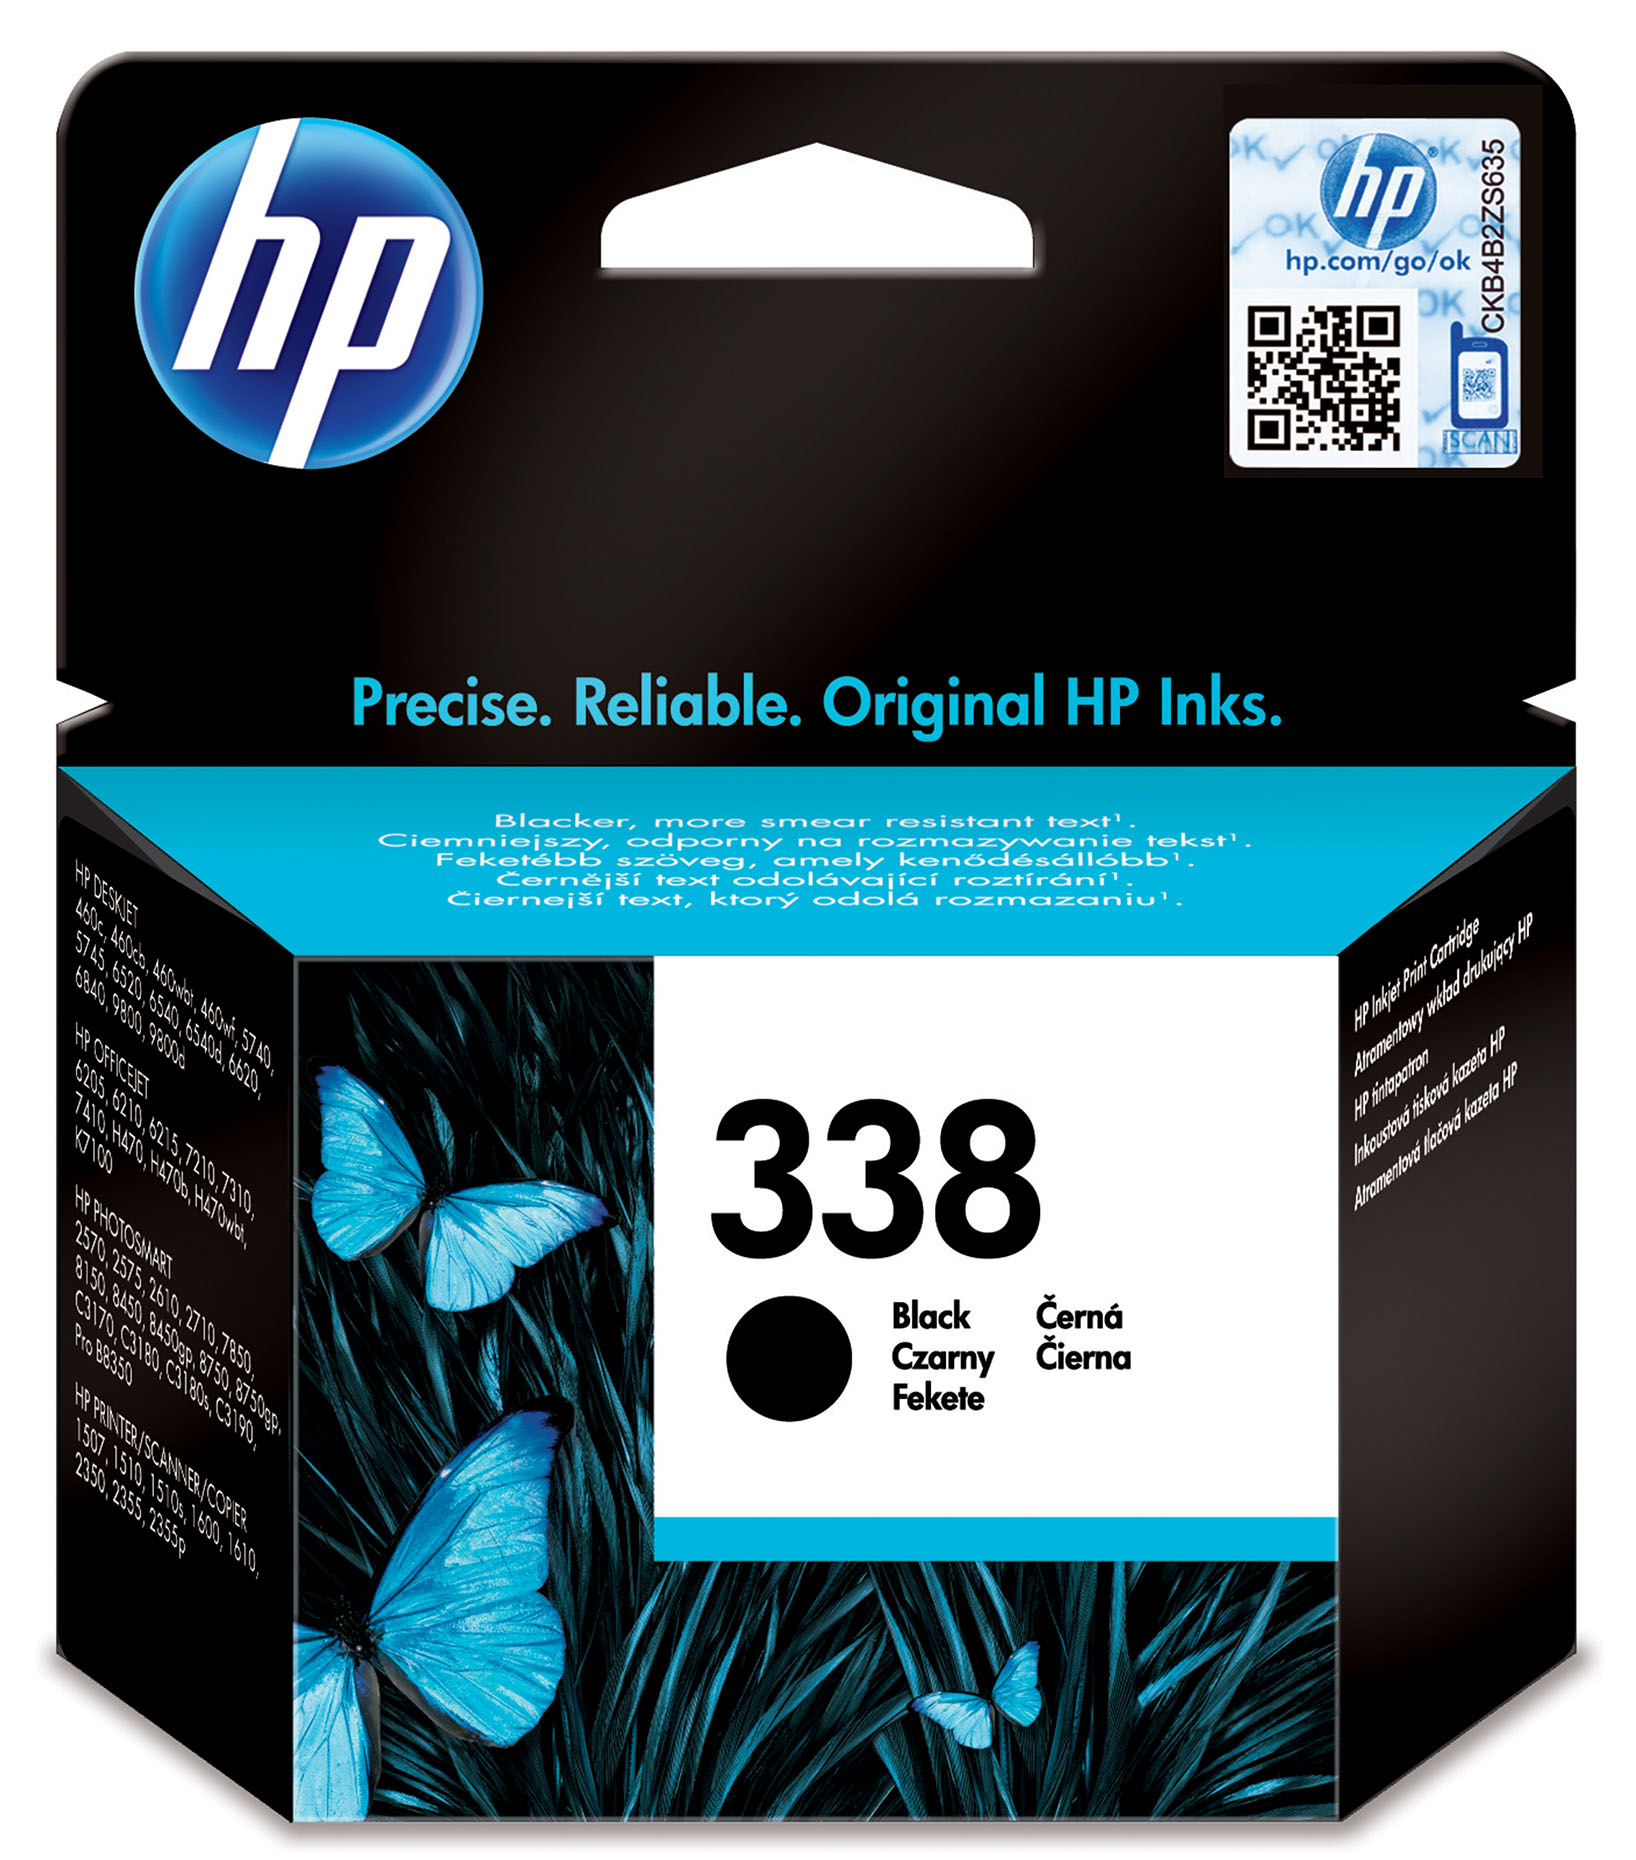 Hp - Inkjet Supply (pl1n) Hvs    Ink Cartridge No 338                Black                            In C8765ee#uus